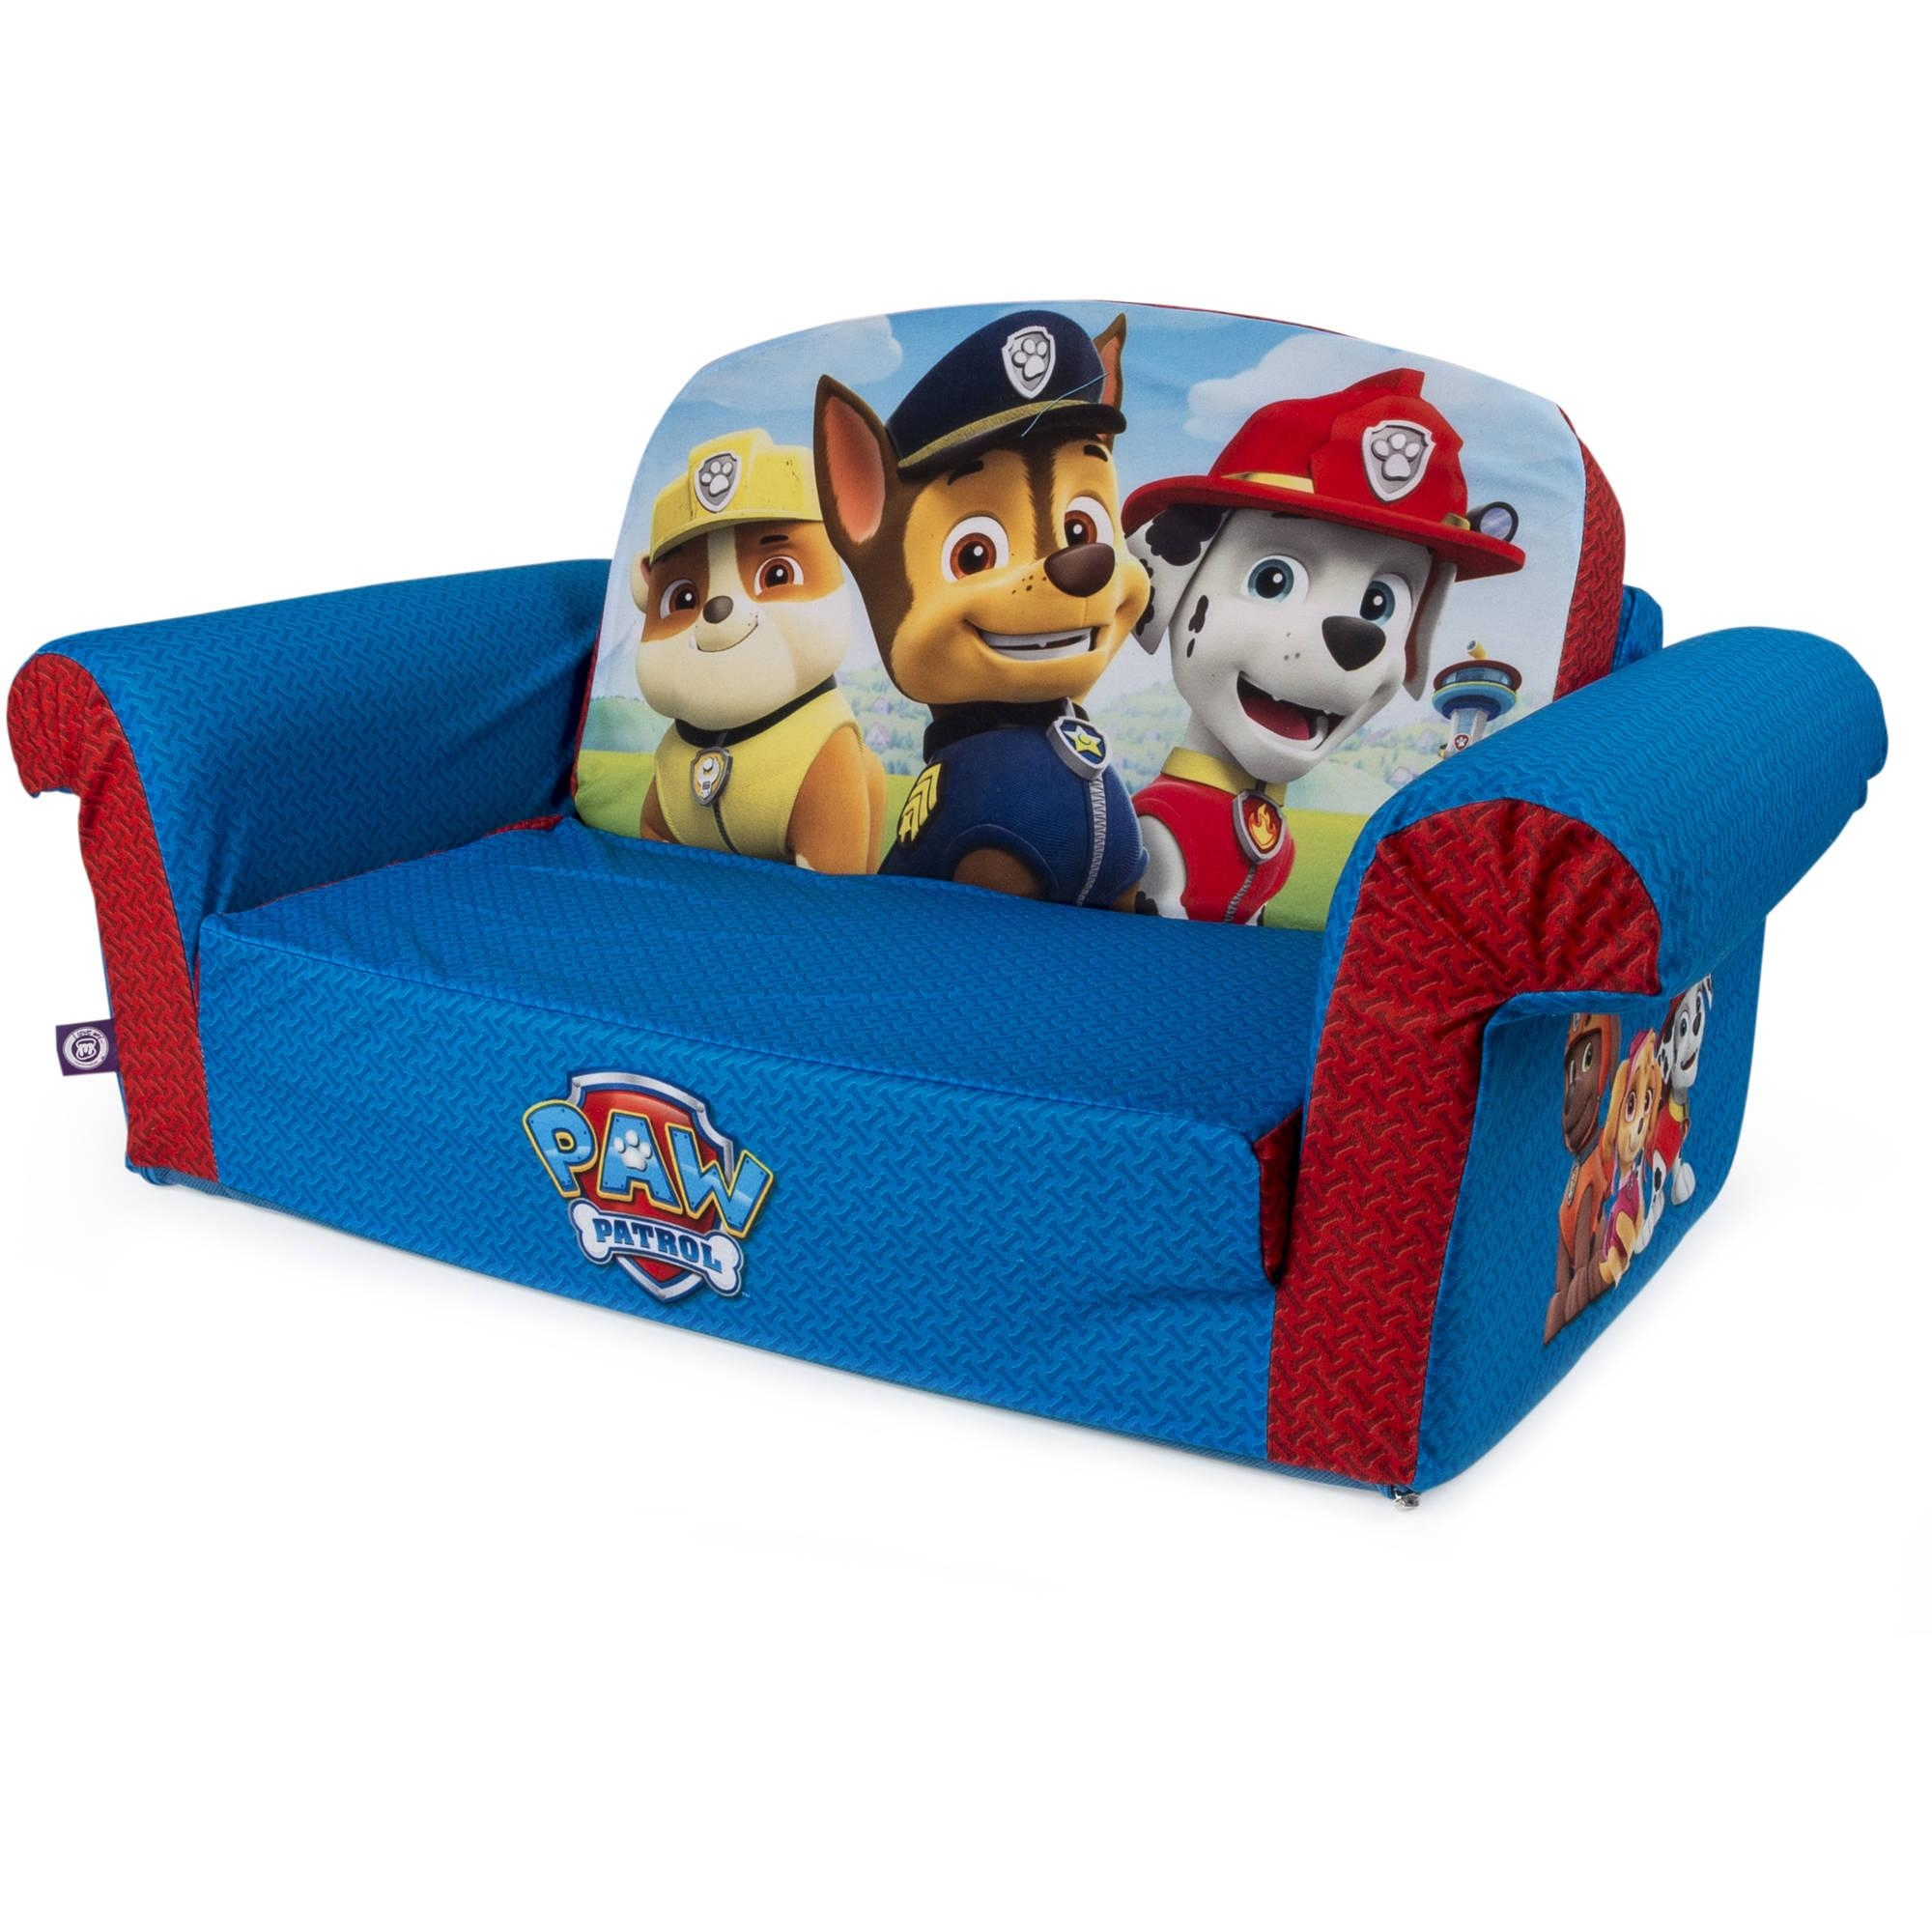 Marshmallow Furniture, Children's 2 In 1 Flip Open Foam Sofa Pertaining To Flip Out Sofa Bed Toddlers (Image 12 of 20)